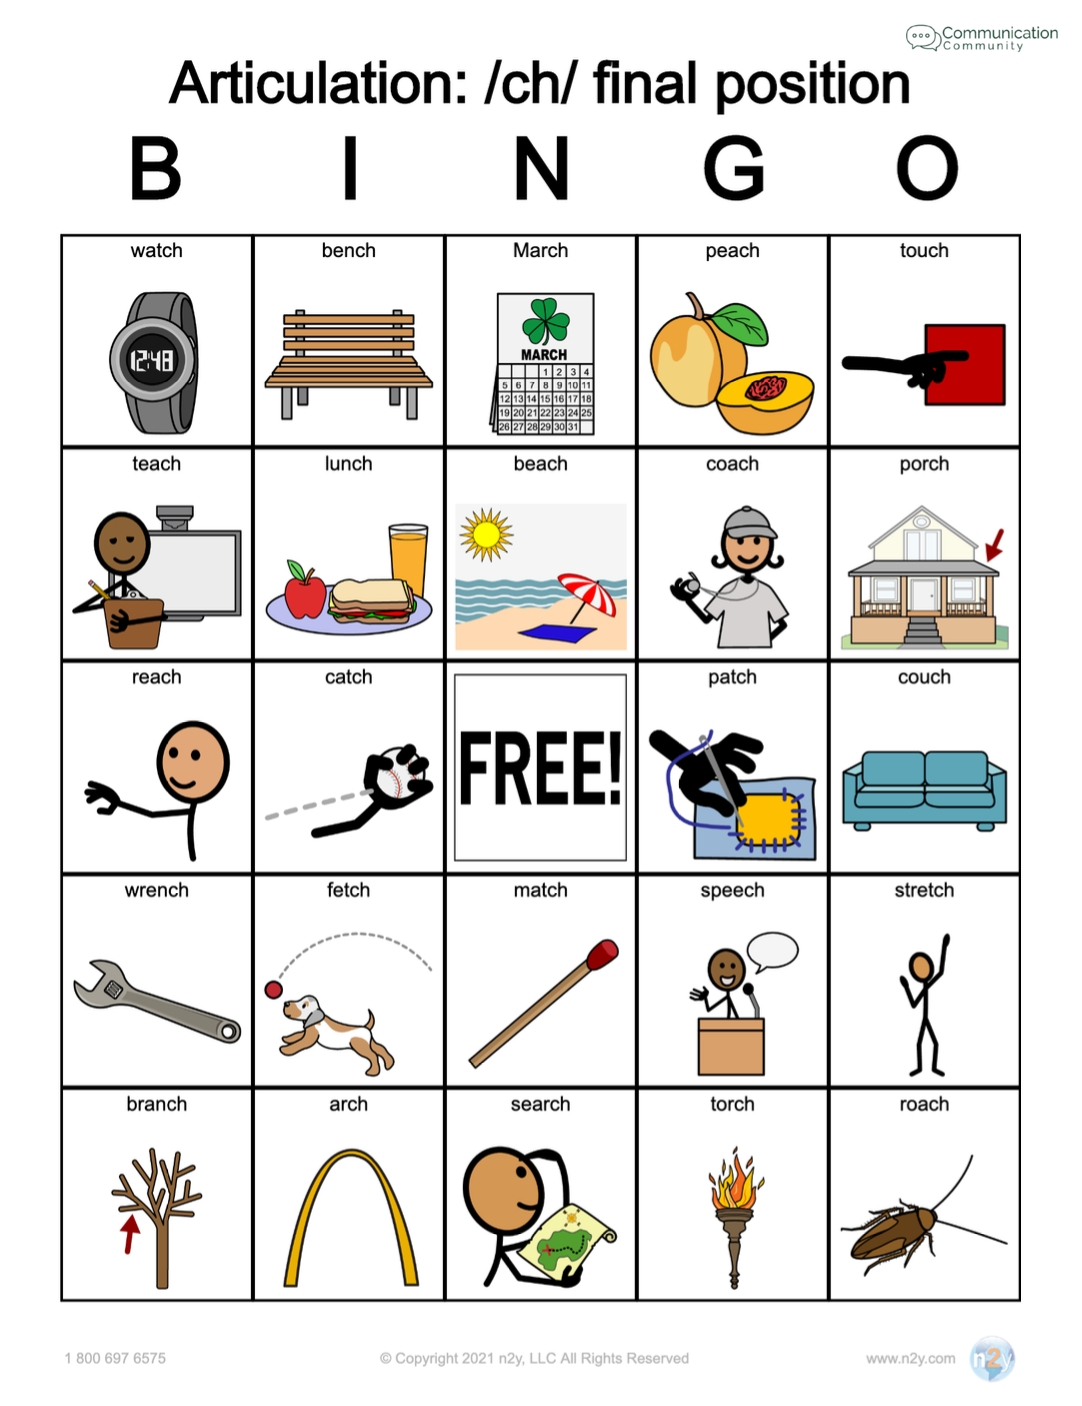 CH Final Position - Articulation Bingo